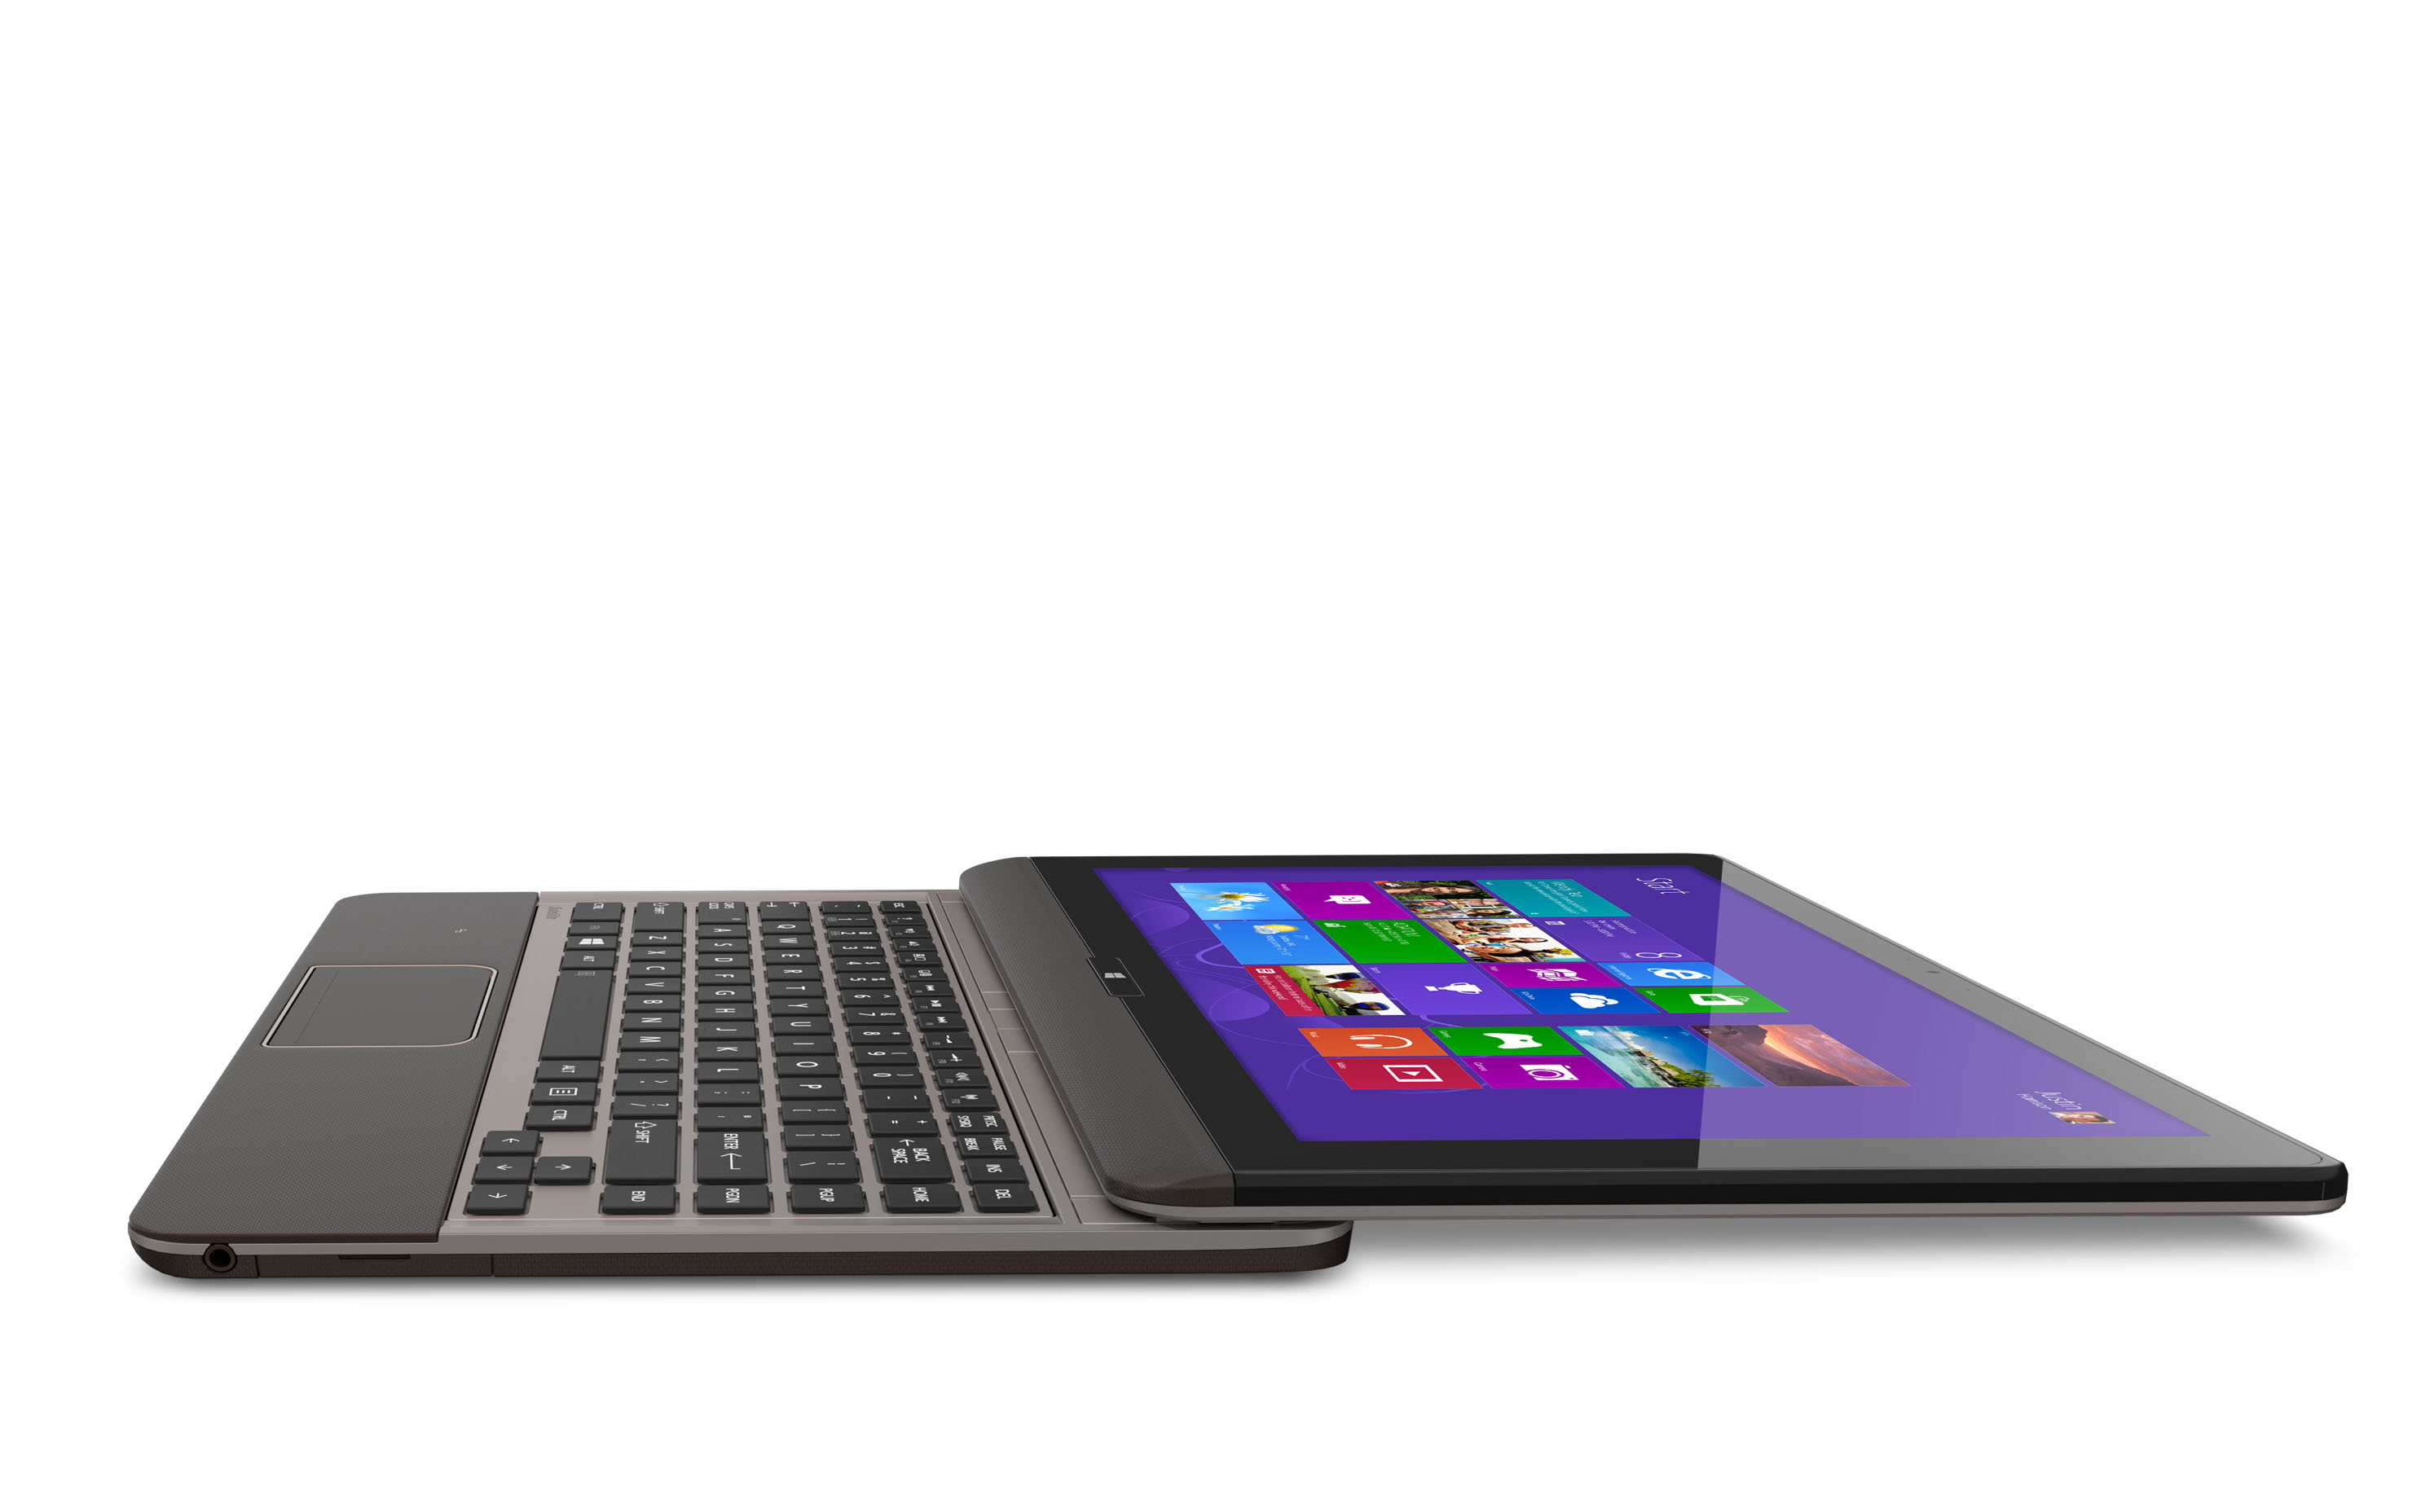 Toshiba Satellite U925t Windows 8 Ultrabook Convertible Launches